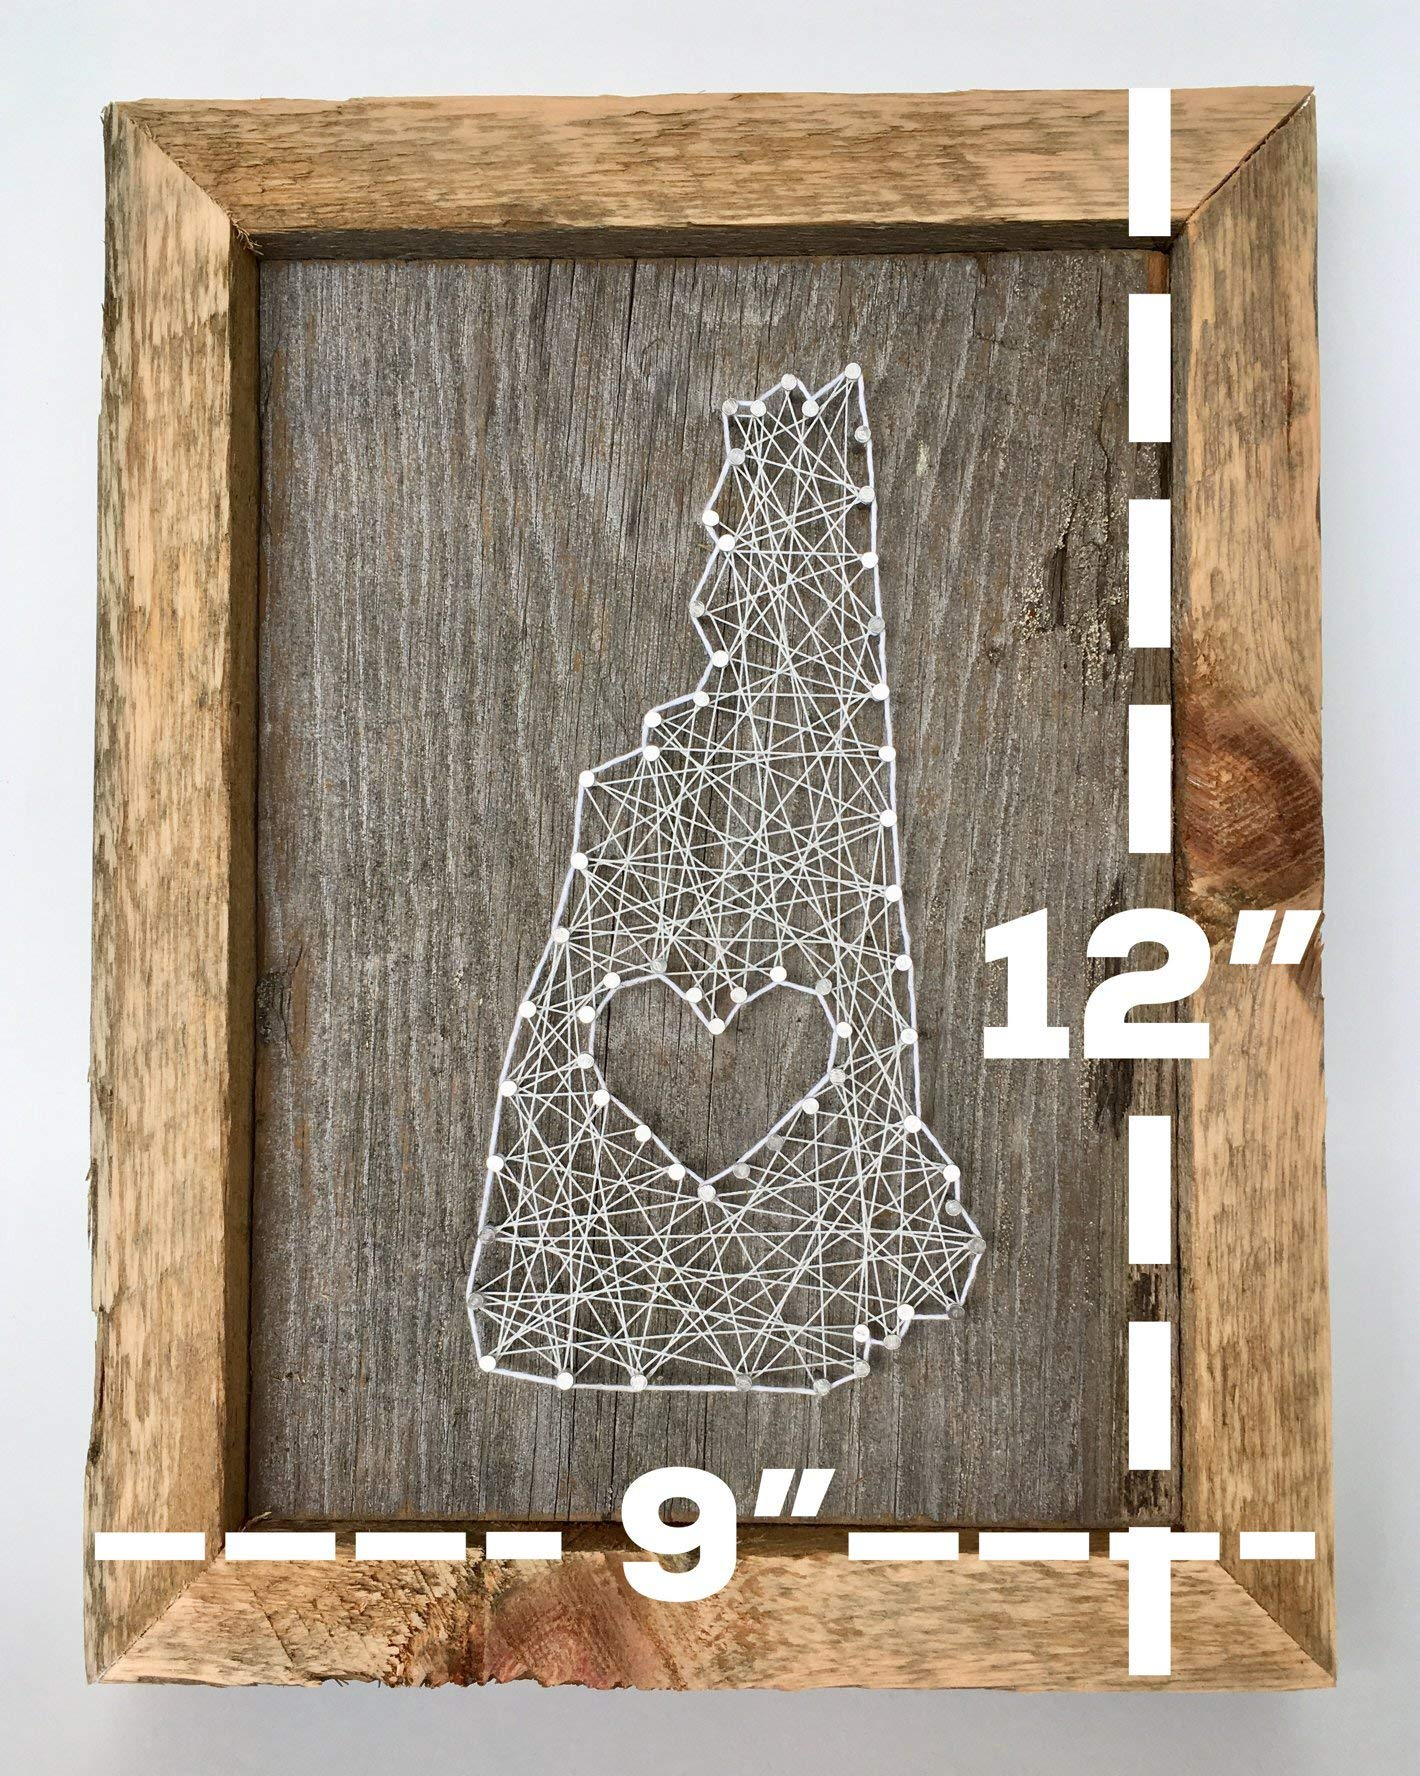 Framed New Hampshire love reclaimed wooden string art sign - A unique and romantic Wedding, Anniversary, House warming, Birthday Valentne's Day and Christmas gift by Nail it Art (Image #2)